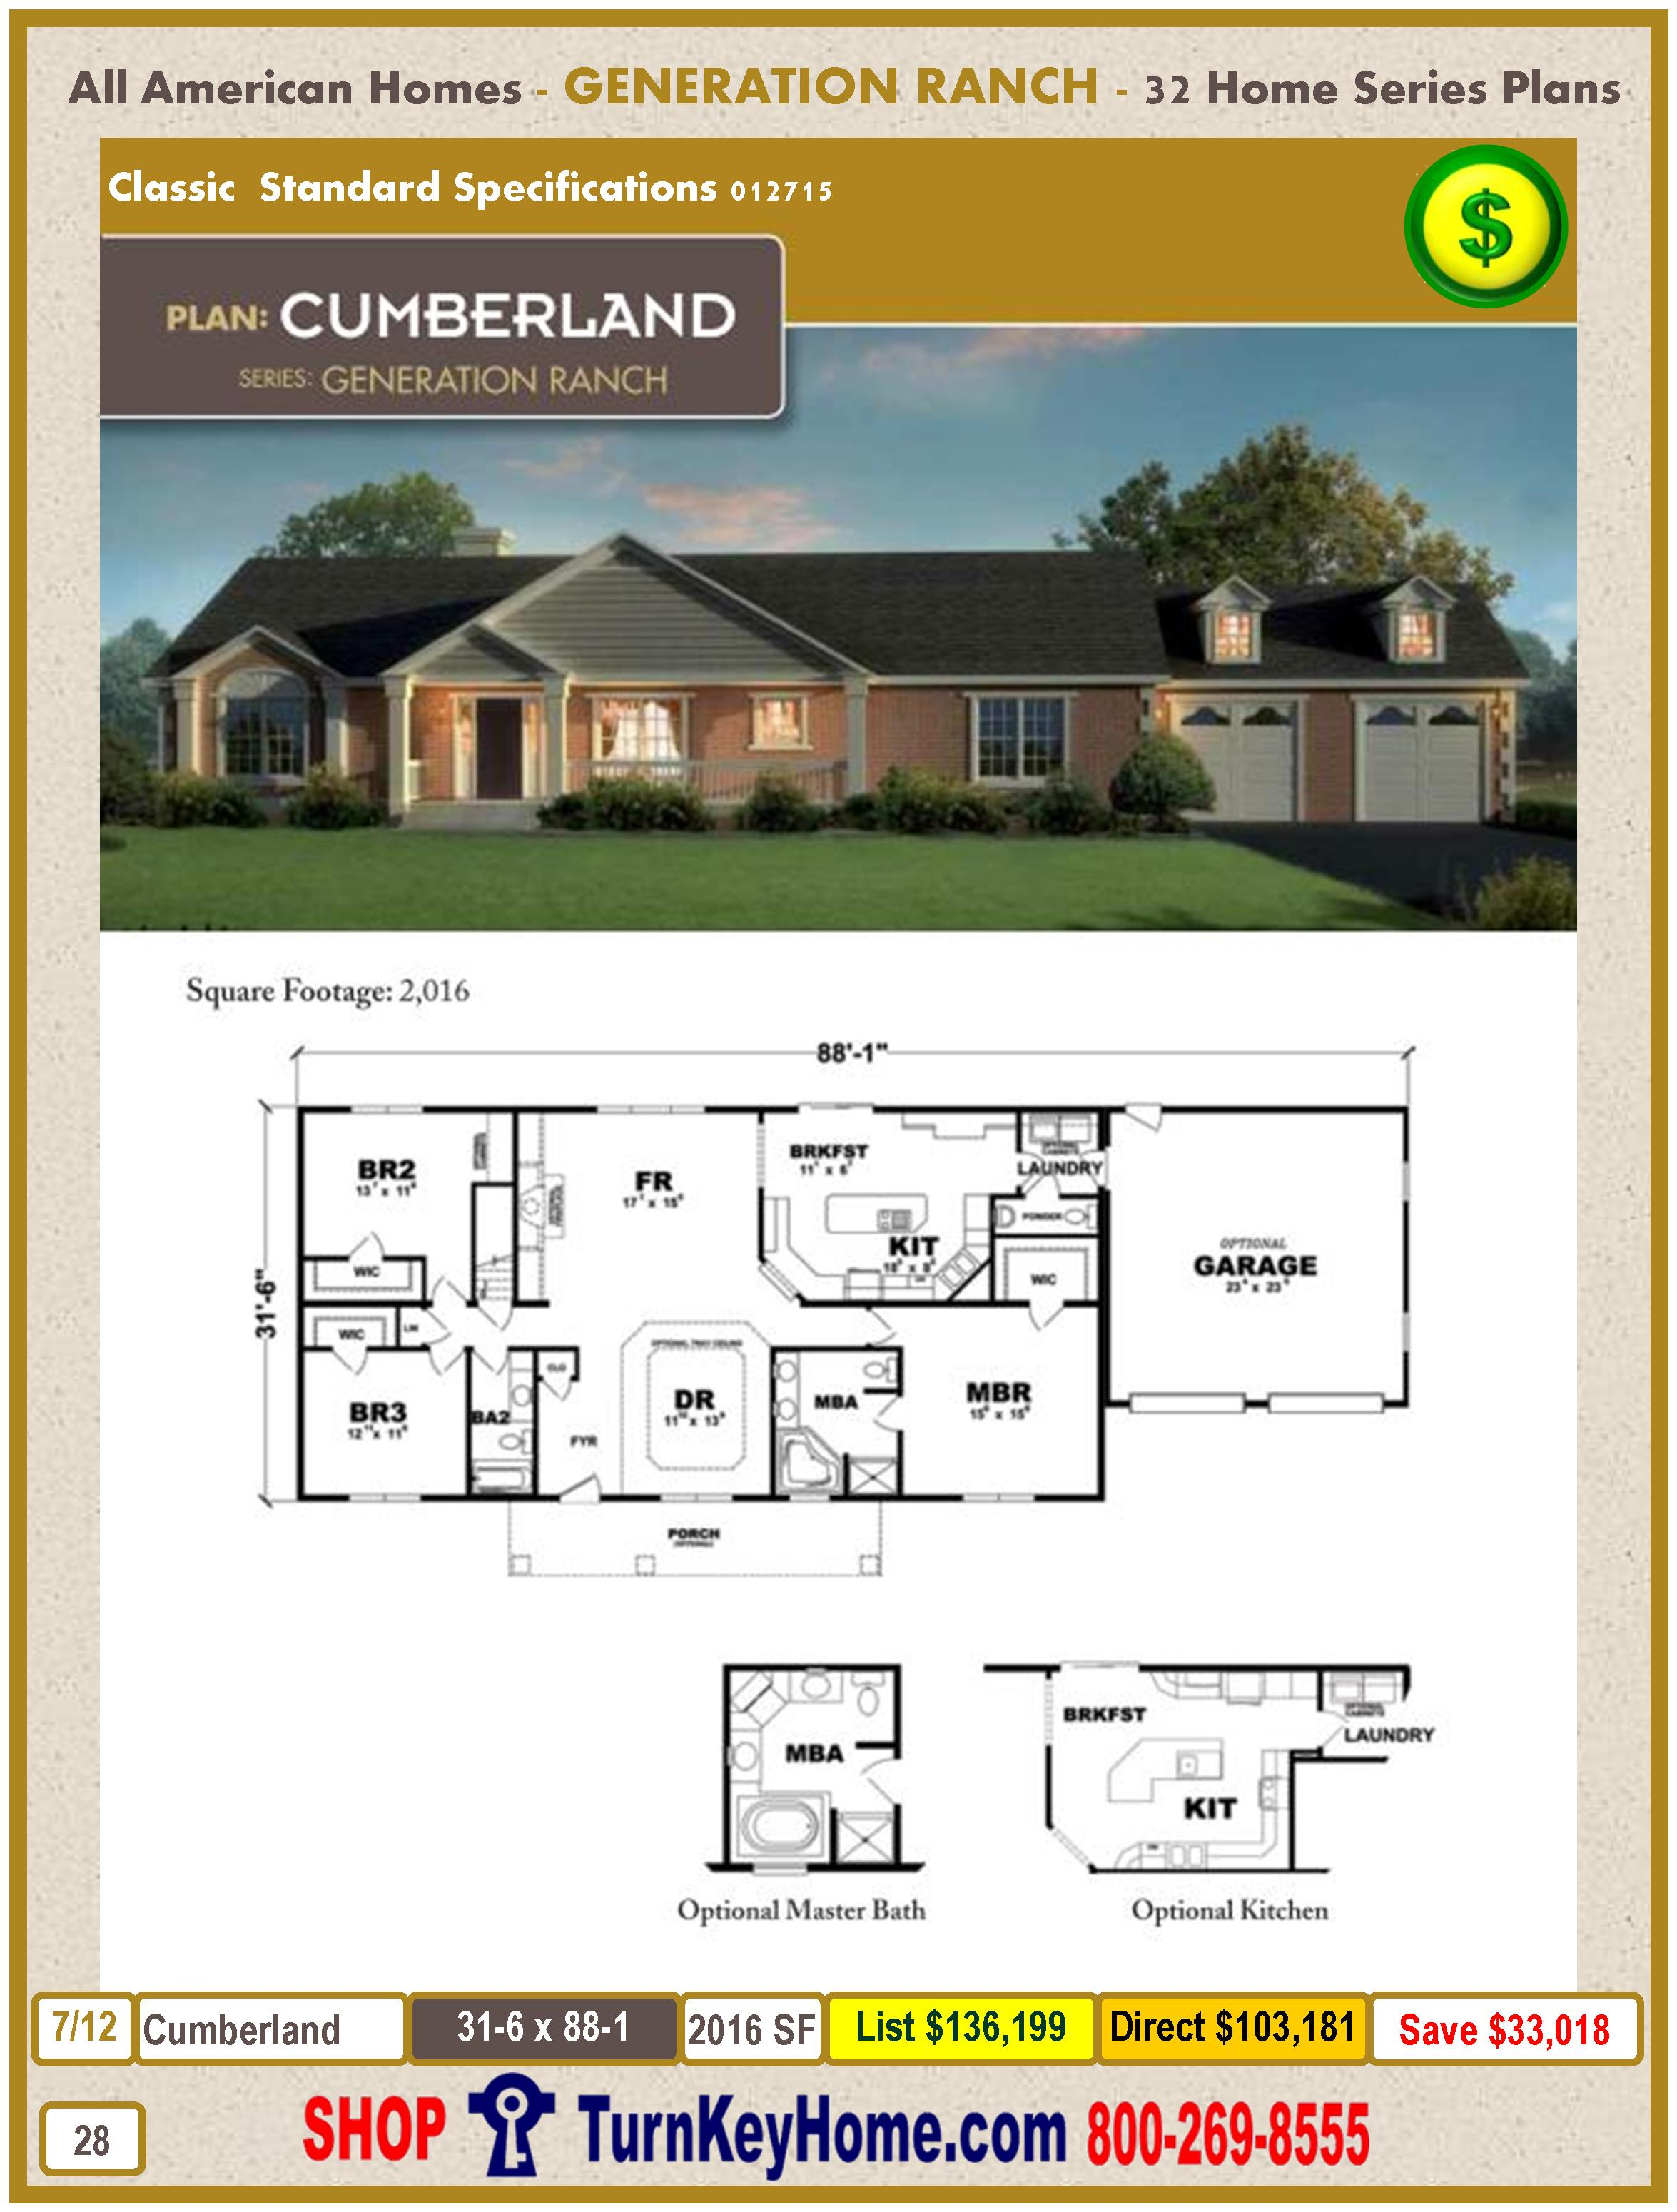 Modular.All.American.Homes.Generation.Ranch.Home.Series.Catalog.Page.28.Cumberland.Direct.Price.021415